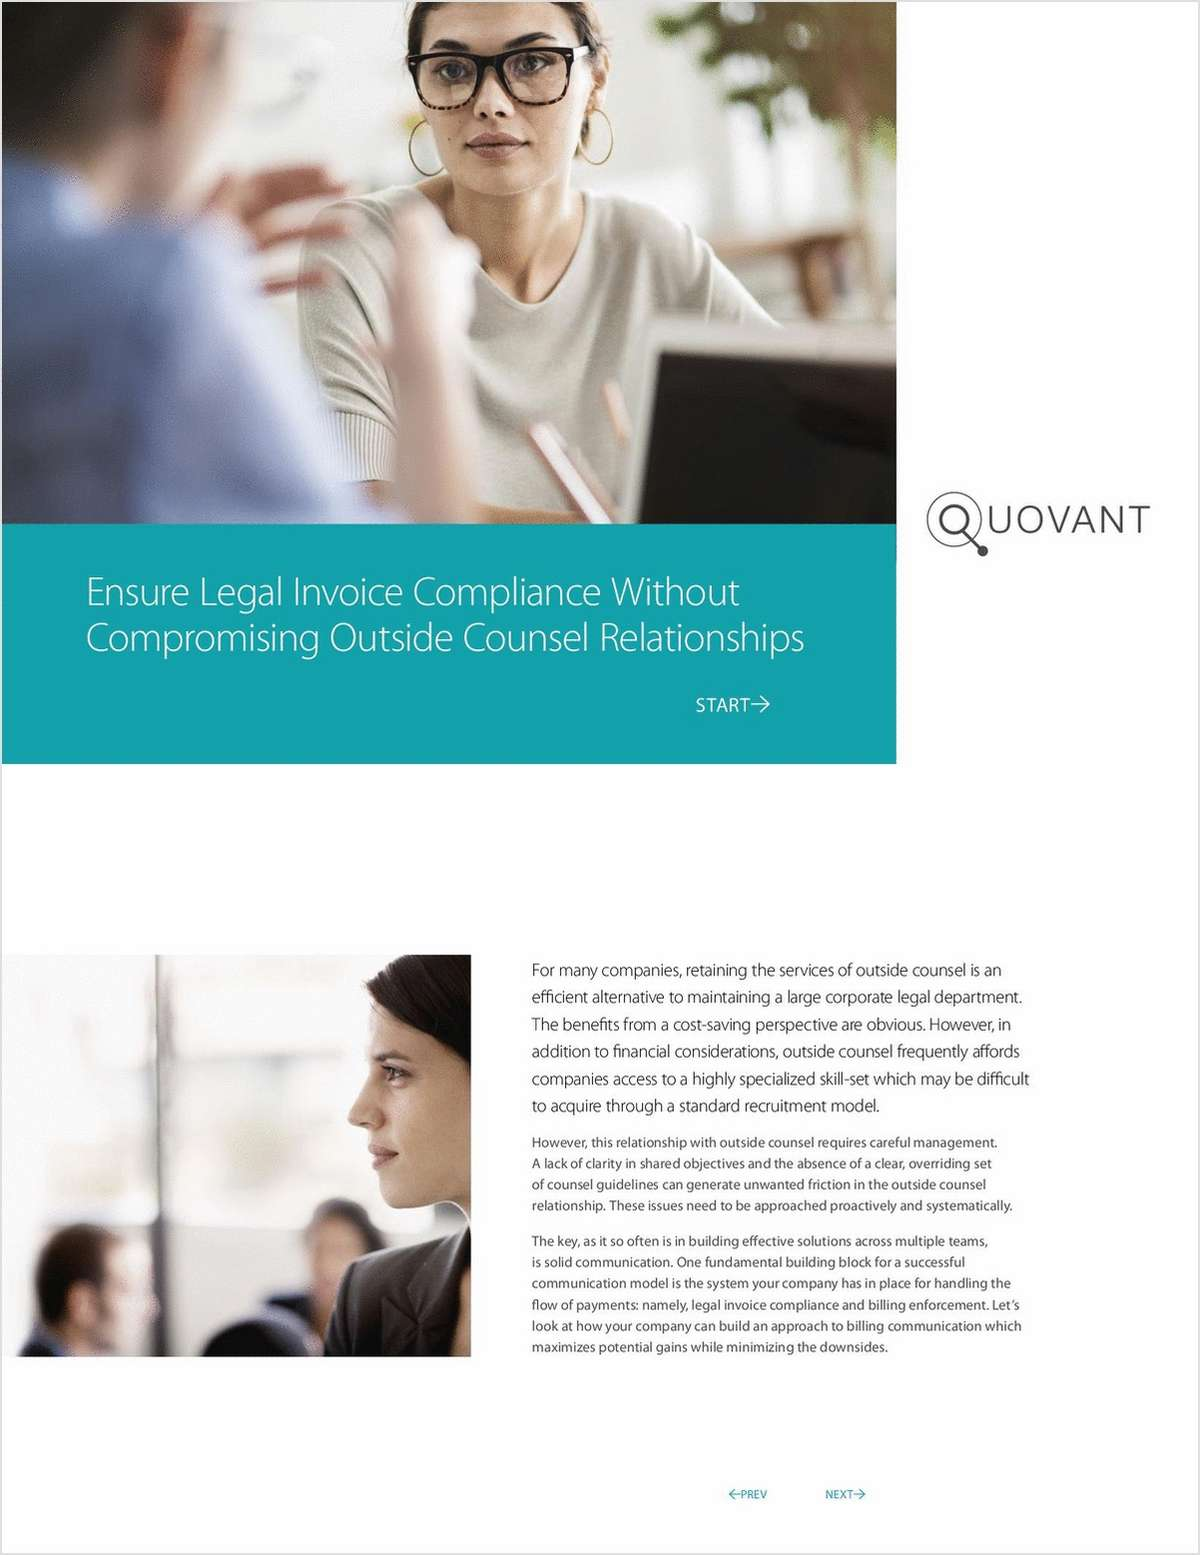 Ensure Legal Invoice Compliance without Compromising Outside Counsel Relationships